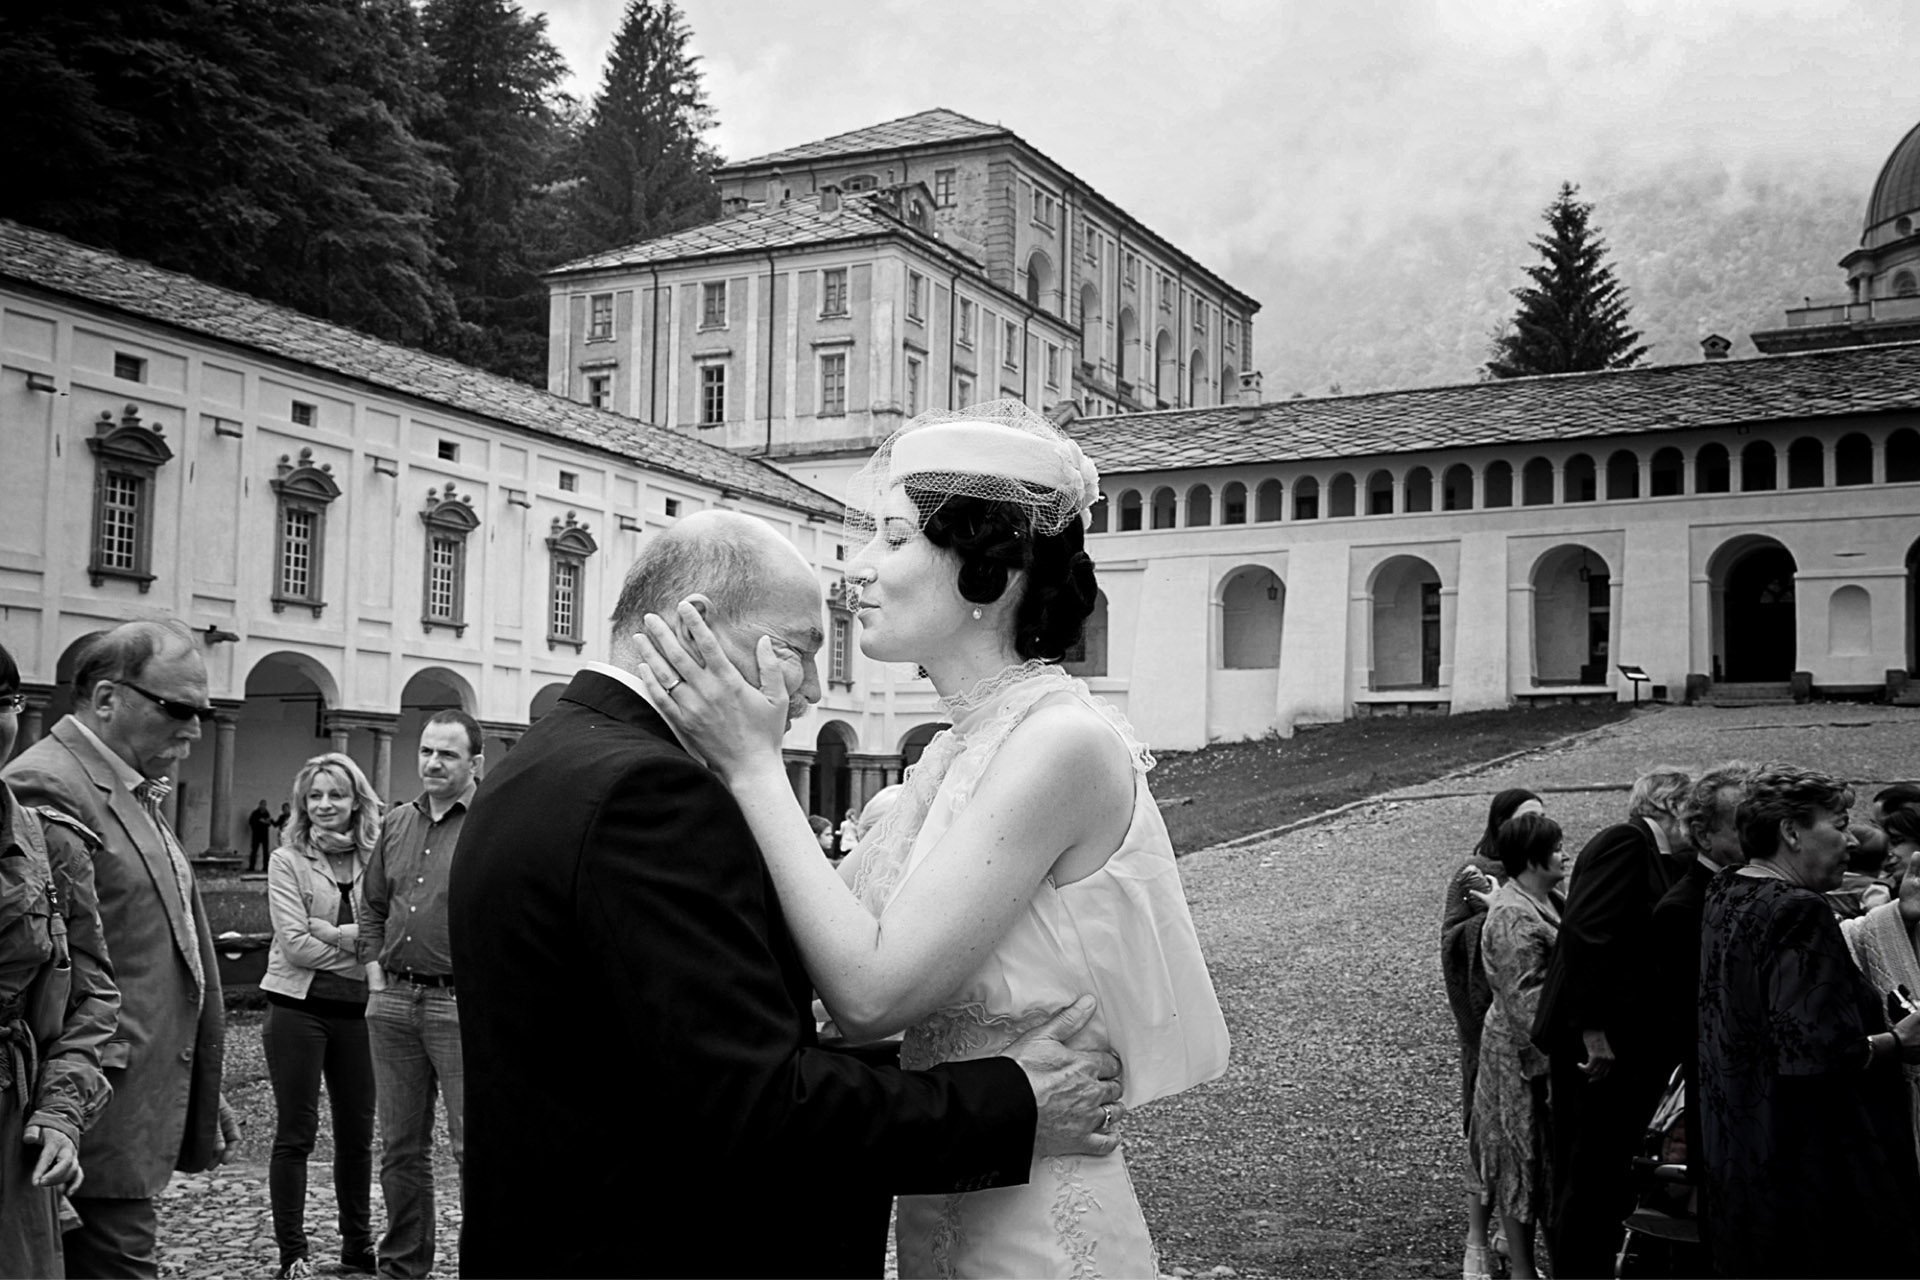 Wedding photographer based in italy - Exclusive location - Florence, Tuscany, Rome